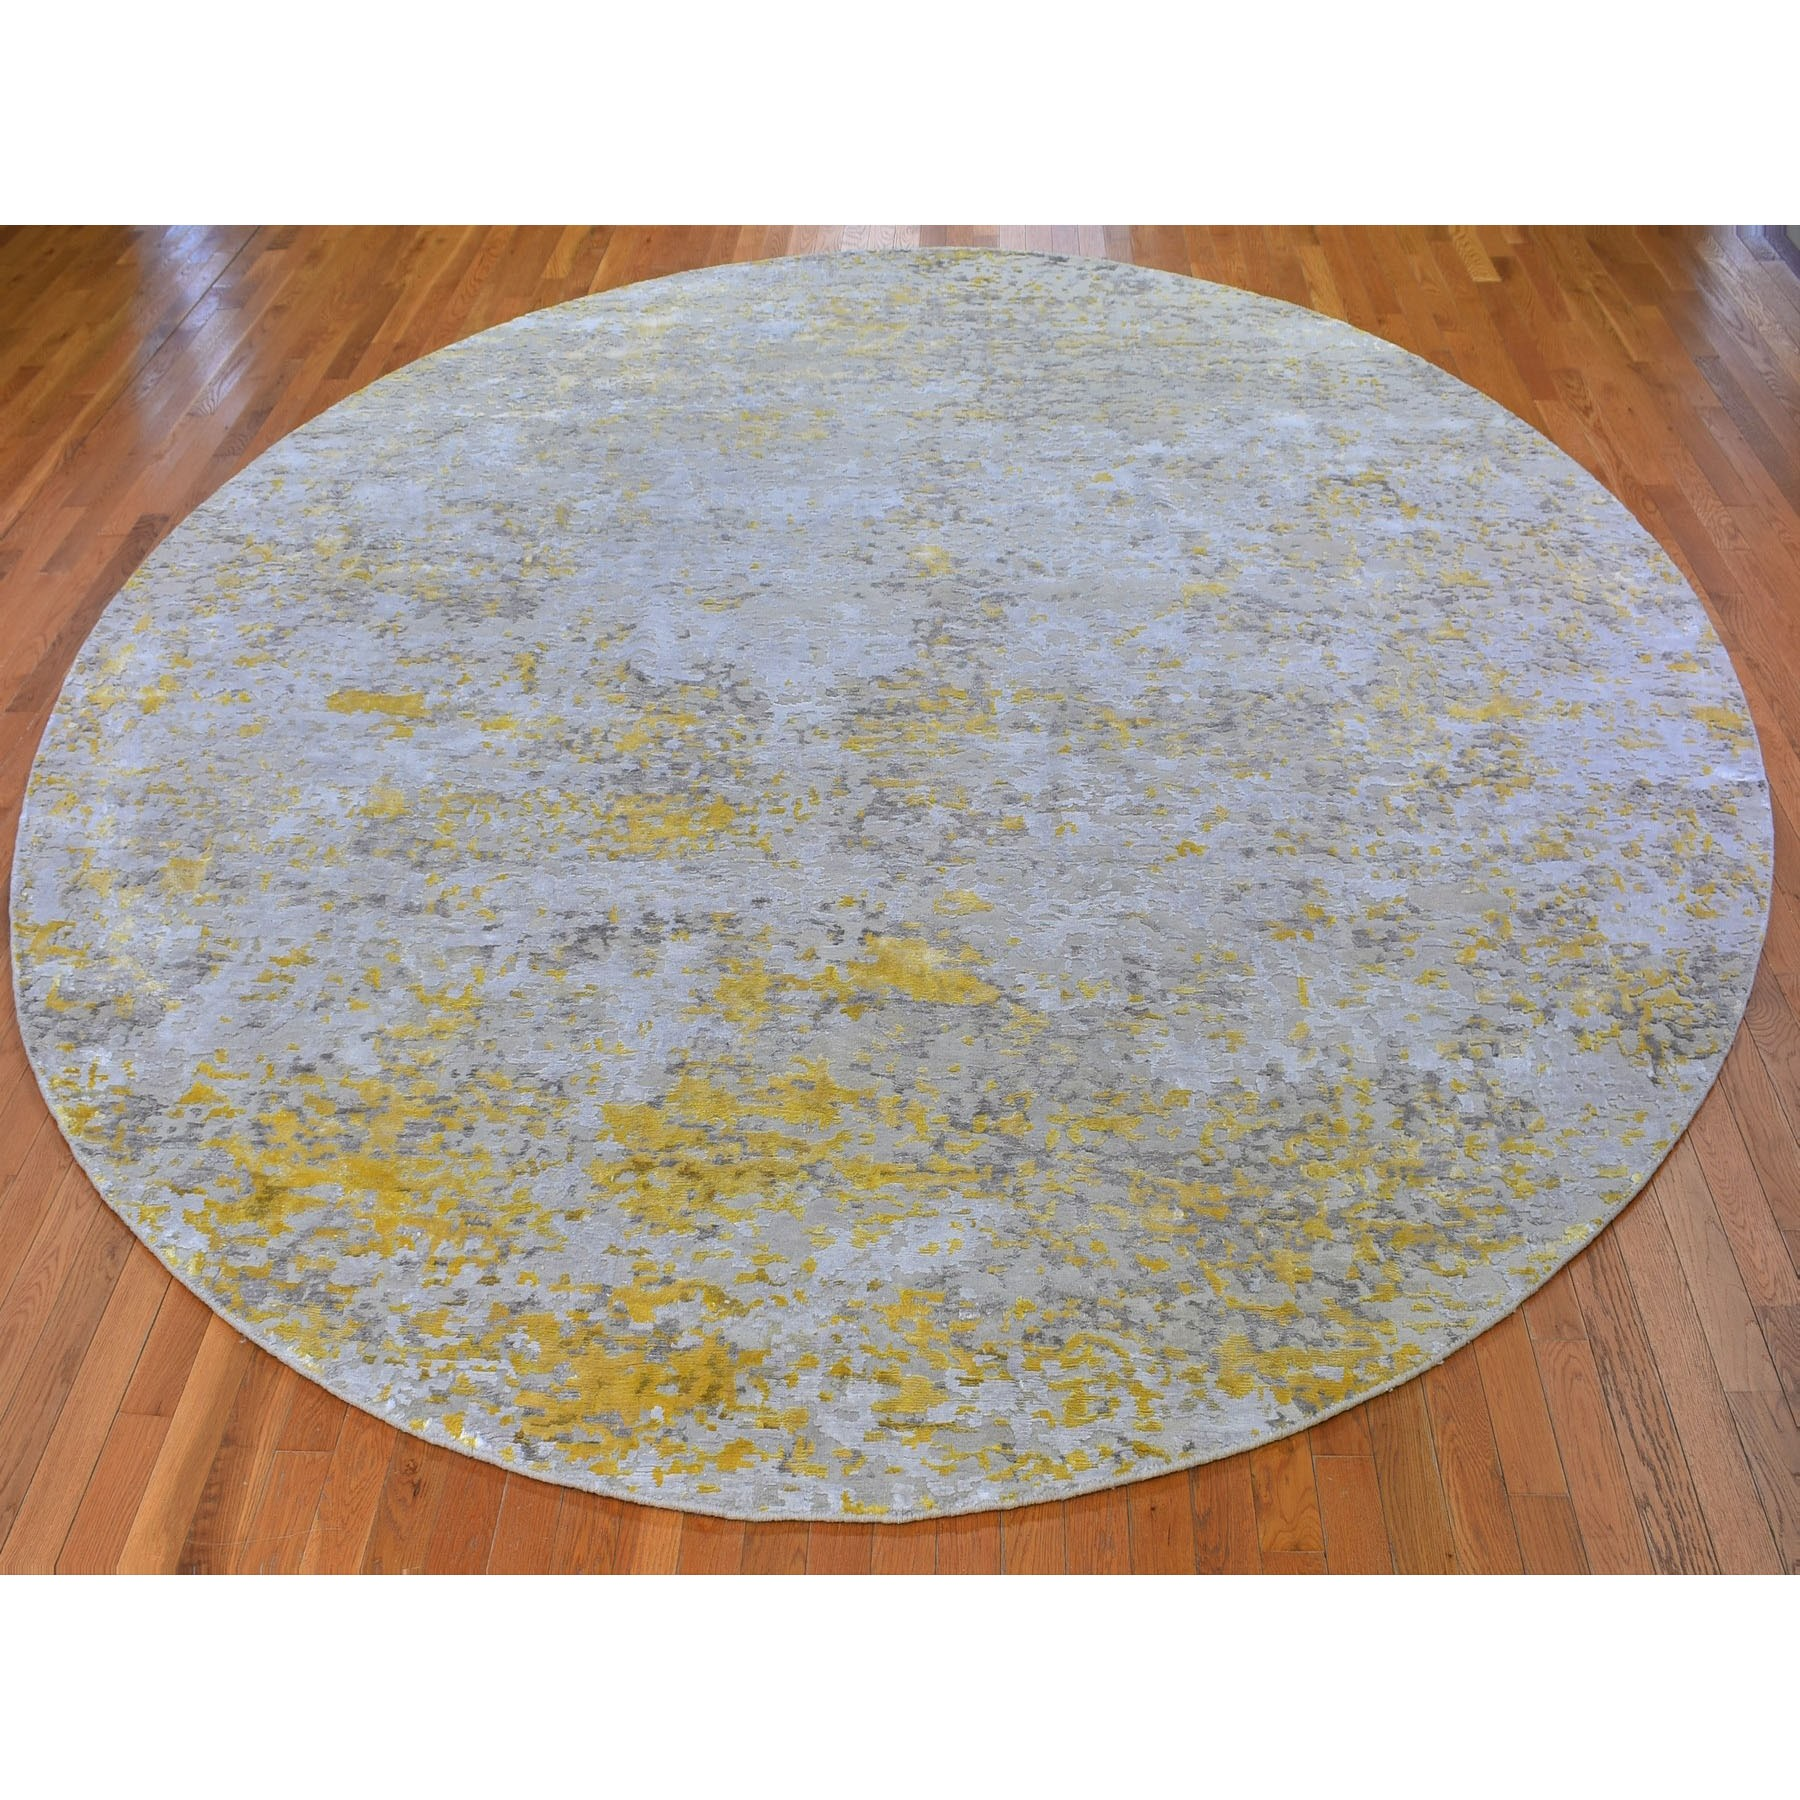 11-10 x11-10  Oversized Round Gold Hi-Lo Pile Abstract Design Wool and Silk Hand Knotted Oriental Rug